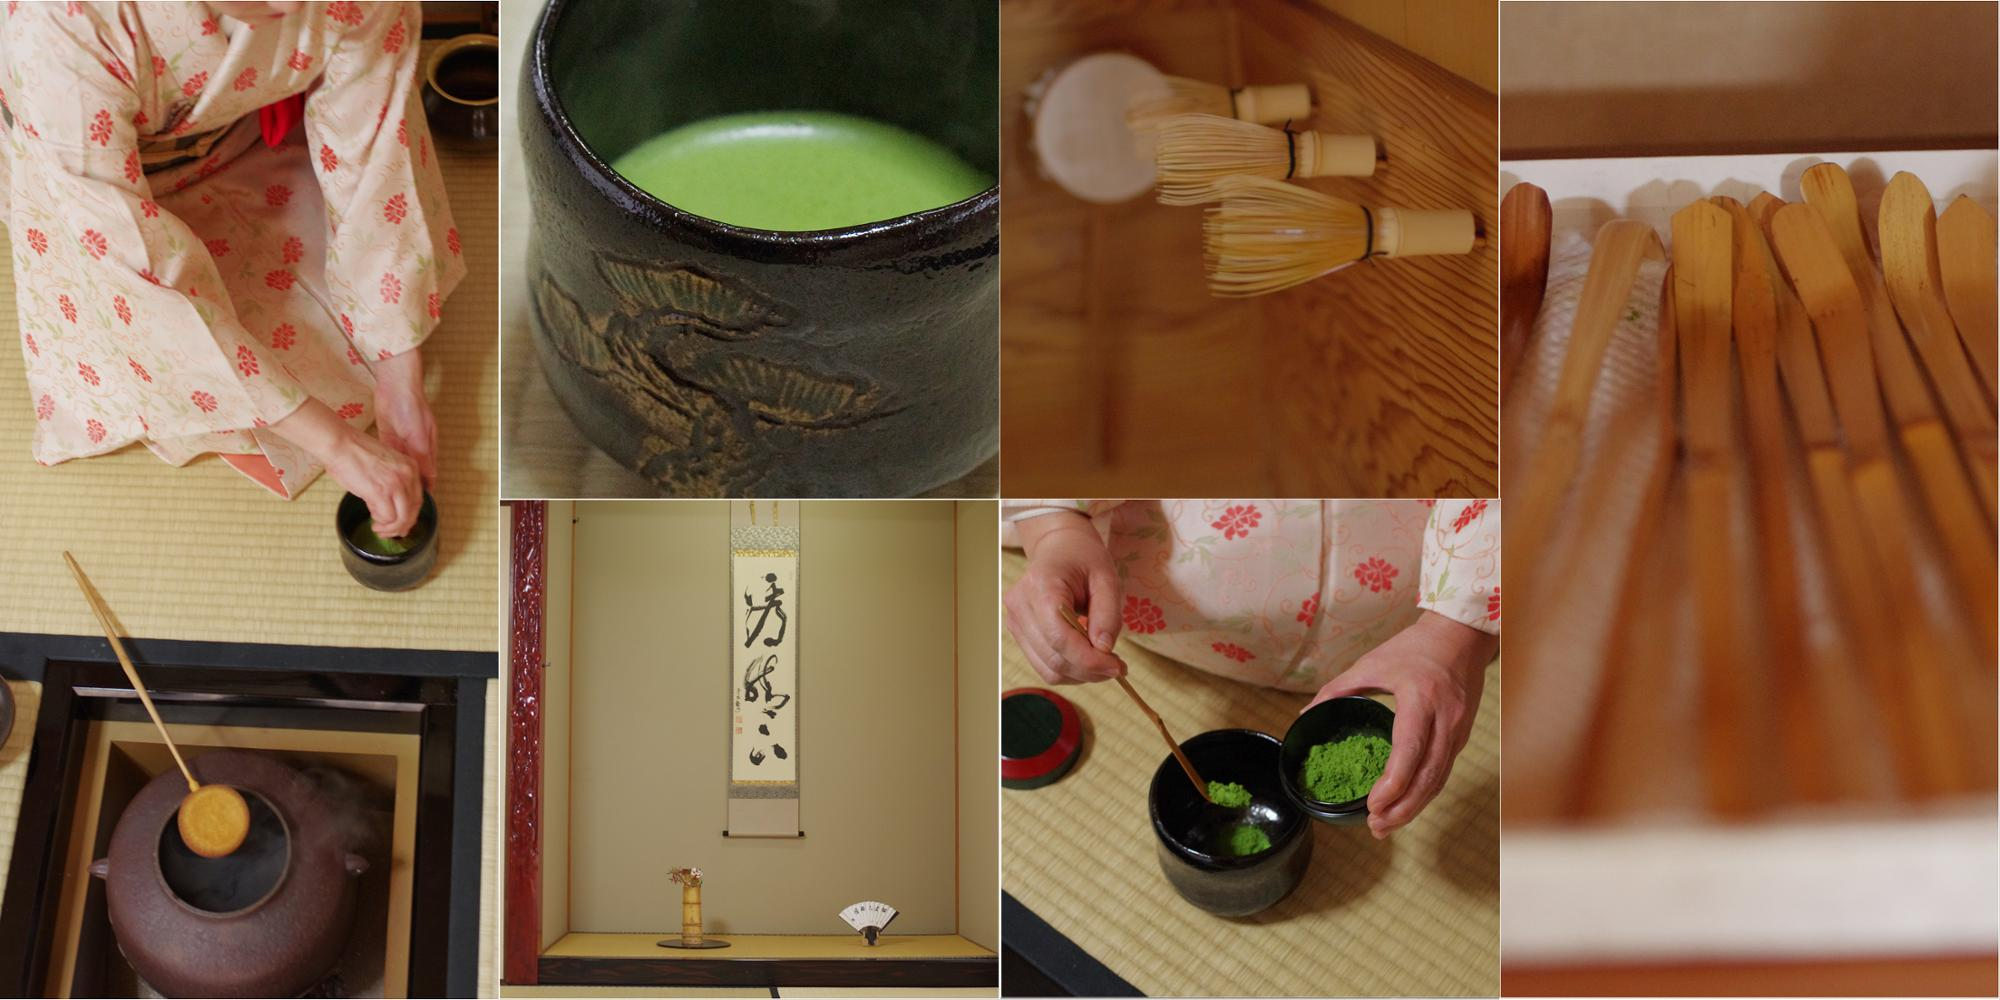 Best Price Of Handmade Japanese Traditional Crafts Matcha Tea Serving Bowl